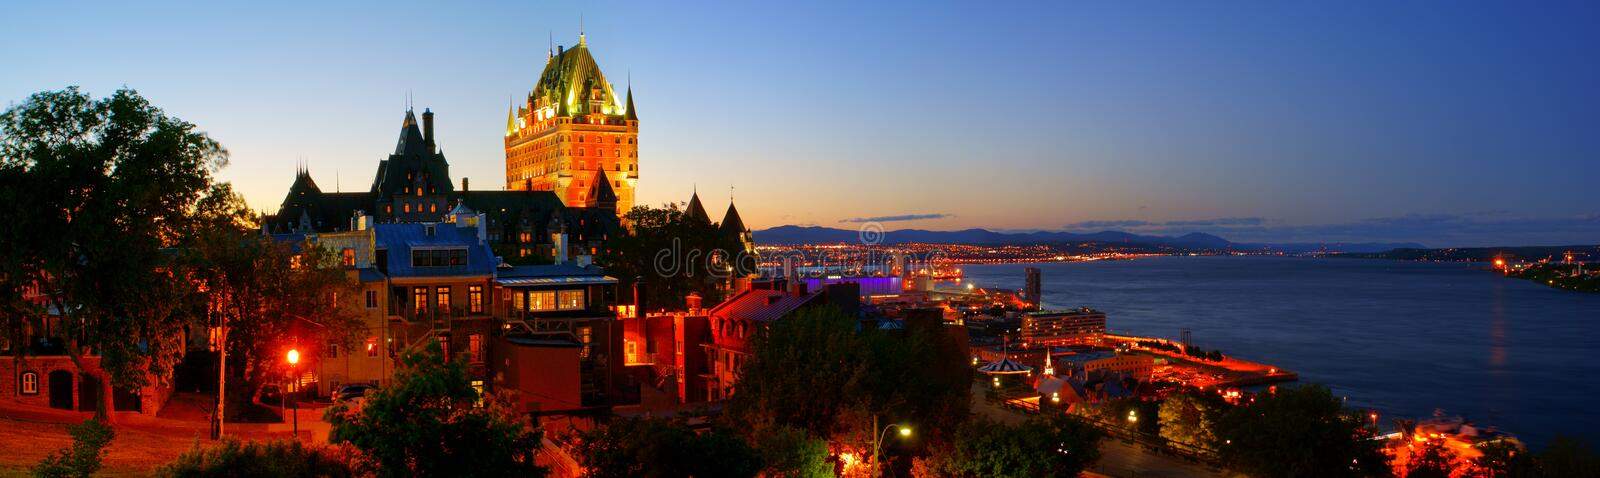 Quebec City stock photos